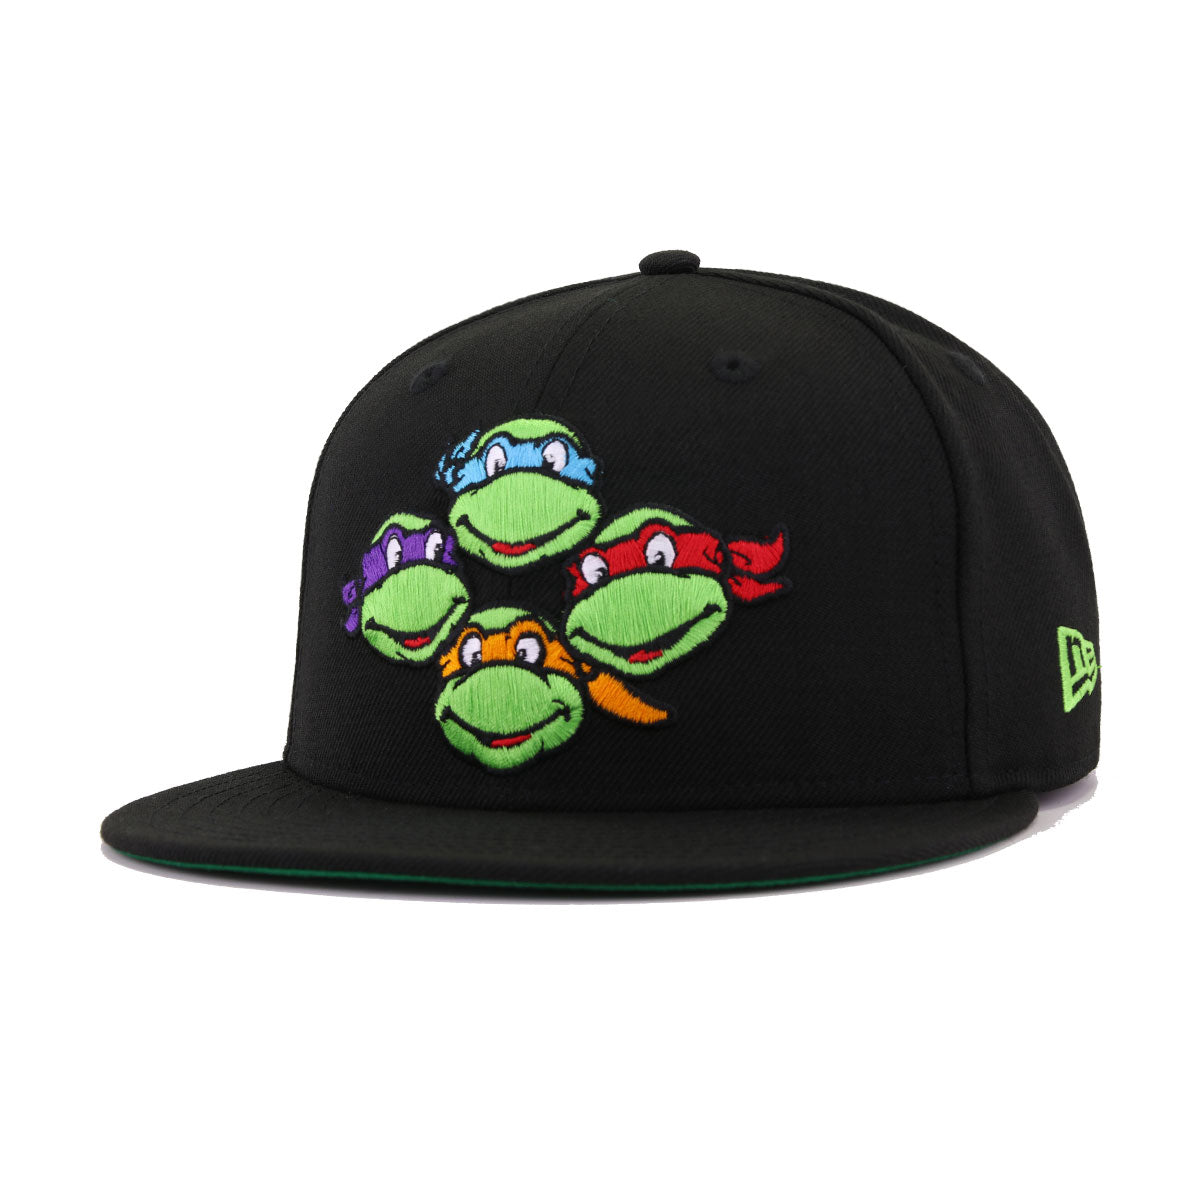 TMNT Teenage Mutant Ninja Turtles Black New Era 9Fifty Snapback